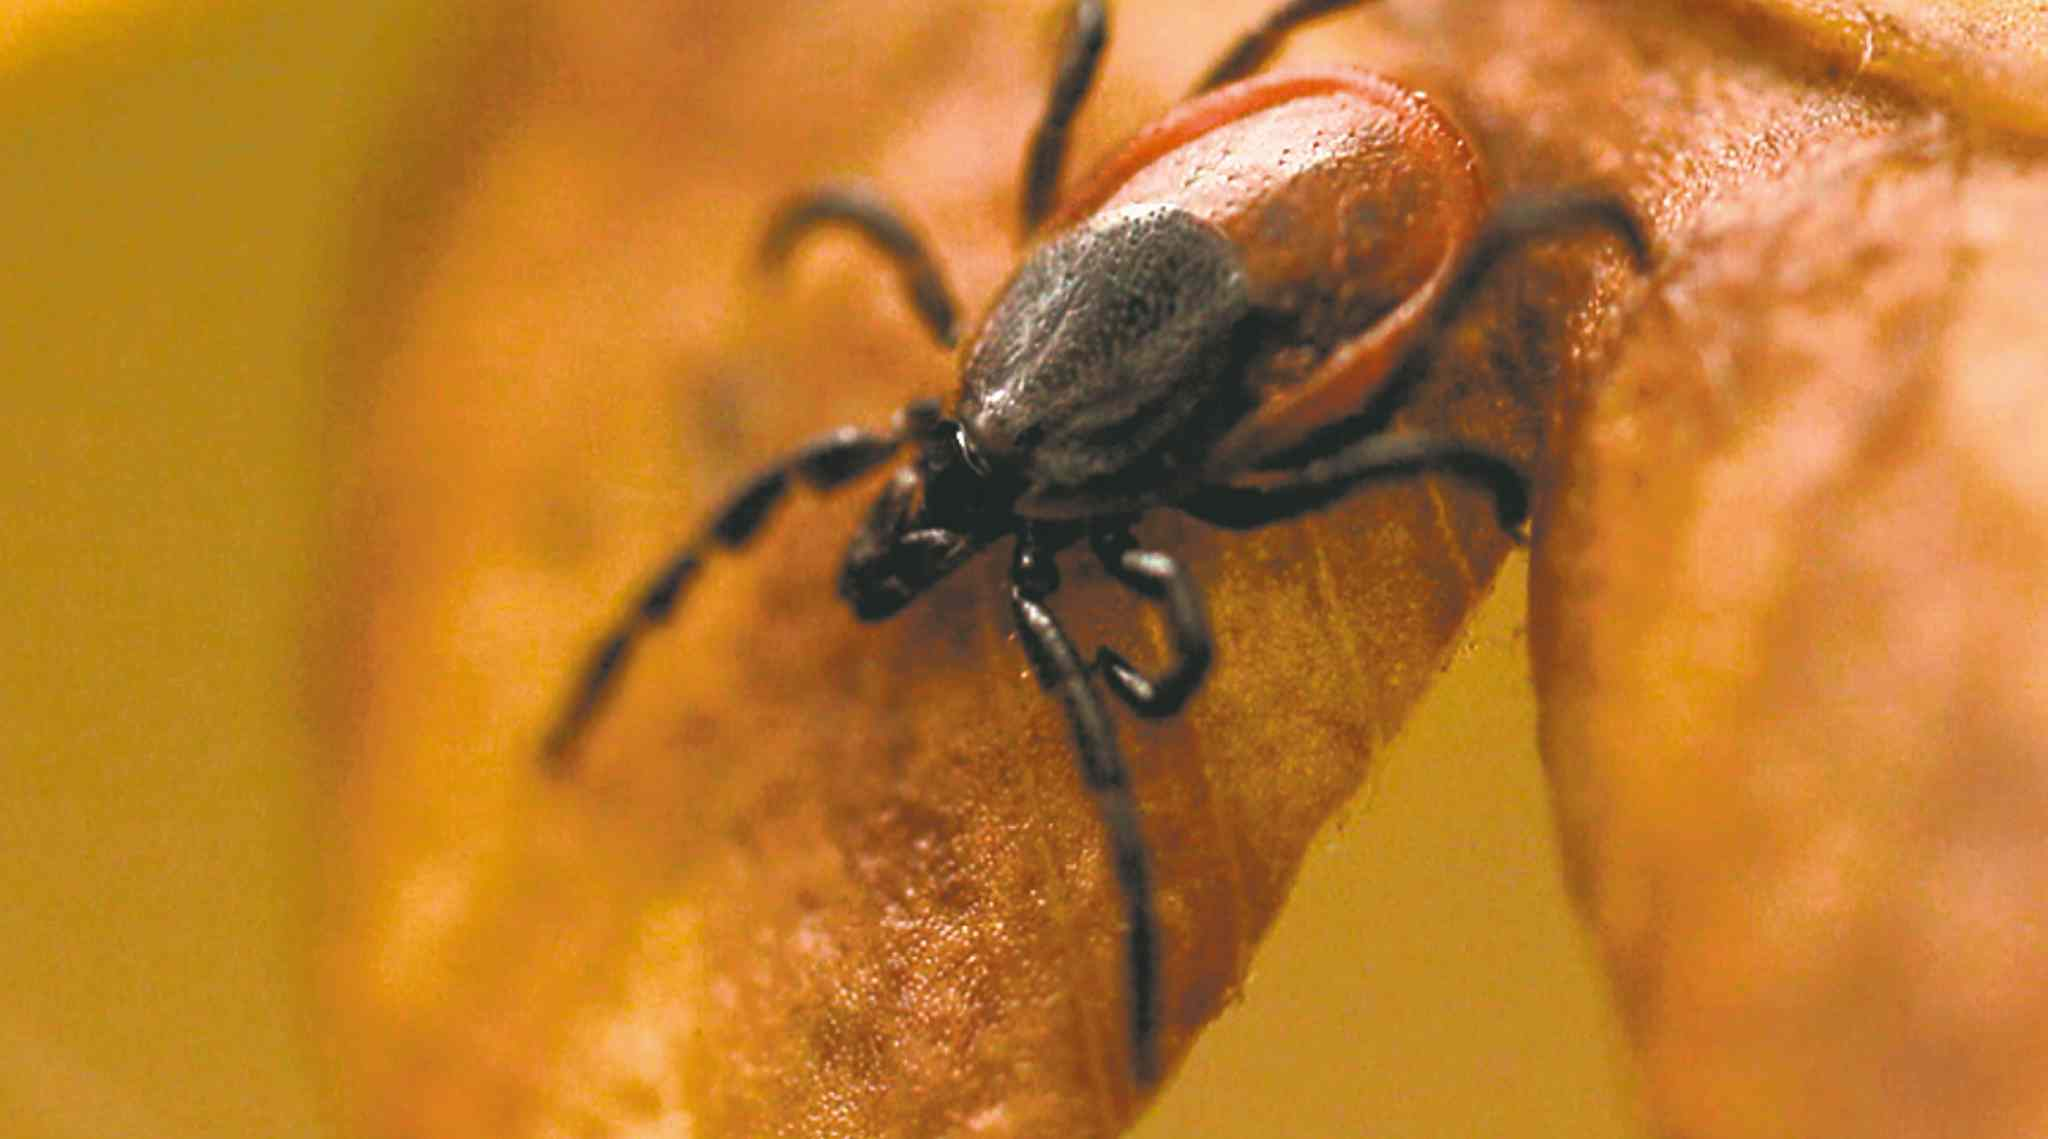 Experts are in agreement deer ticks cause Lyme disease.